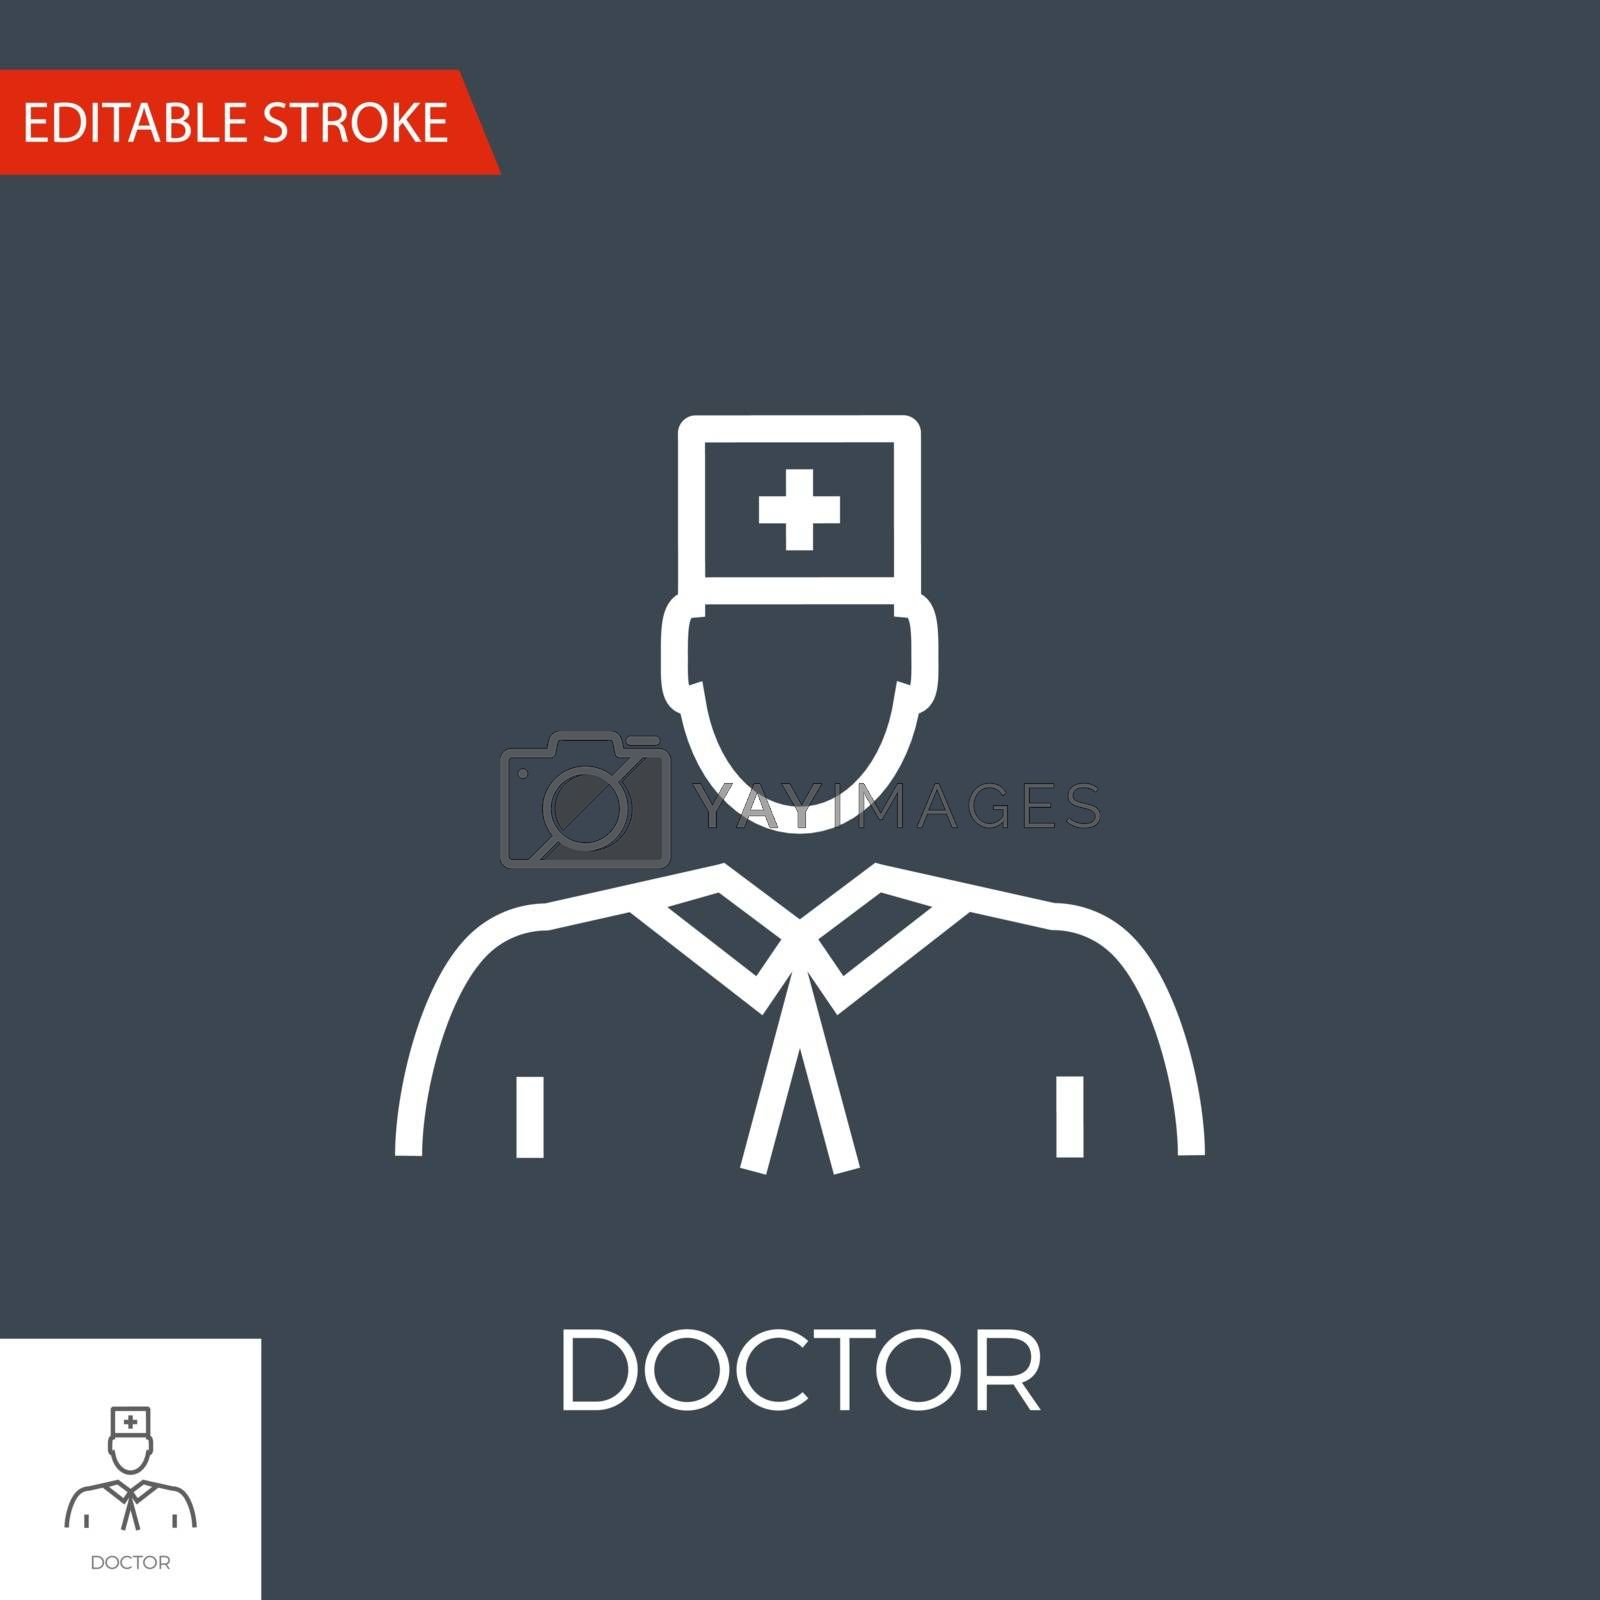 Doctor Thin Line Vector Icon. Flat Icon Isolated on the Black Background. Editable Stroke EPS file. Vector illustration.